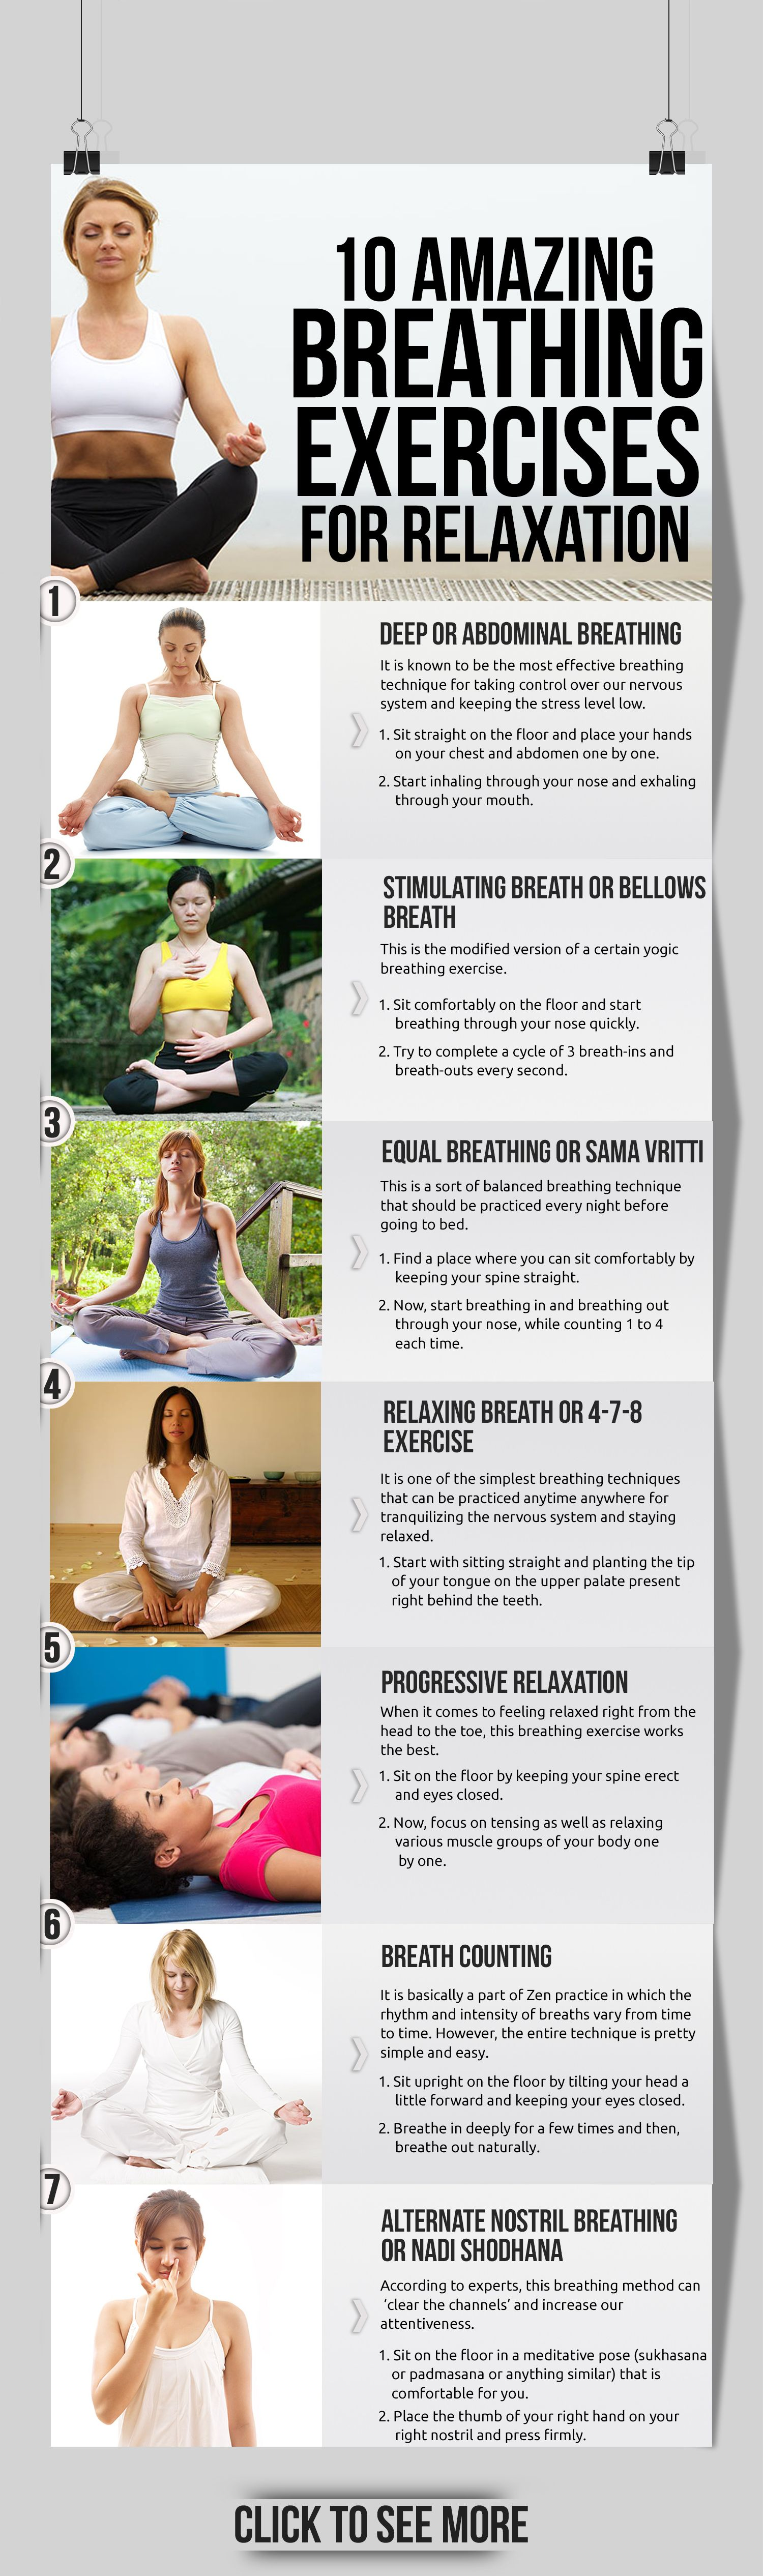 7 Simple Breathing Exercises For Relaxation + Warnings